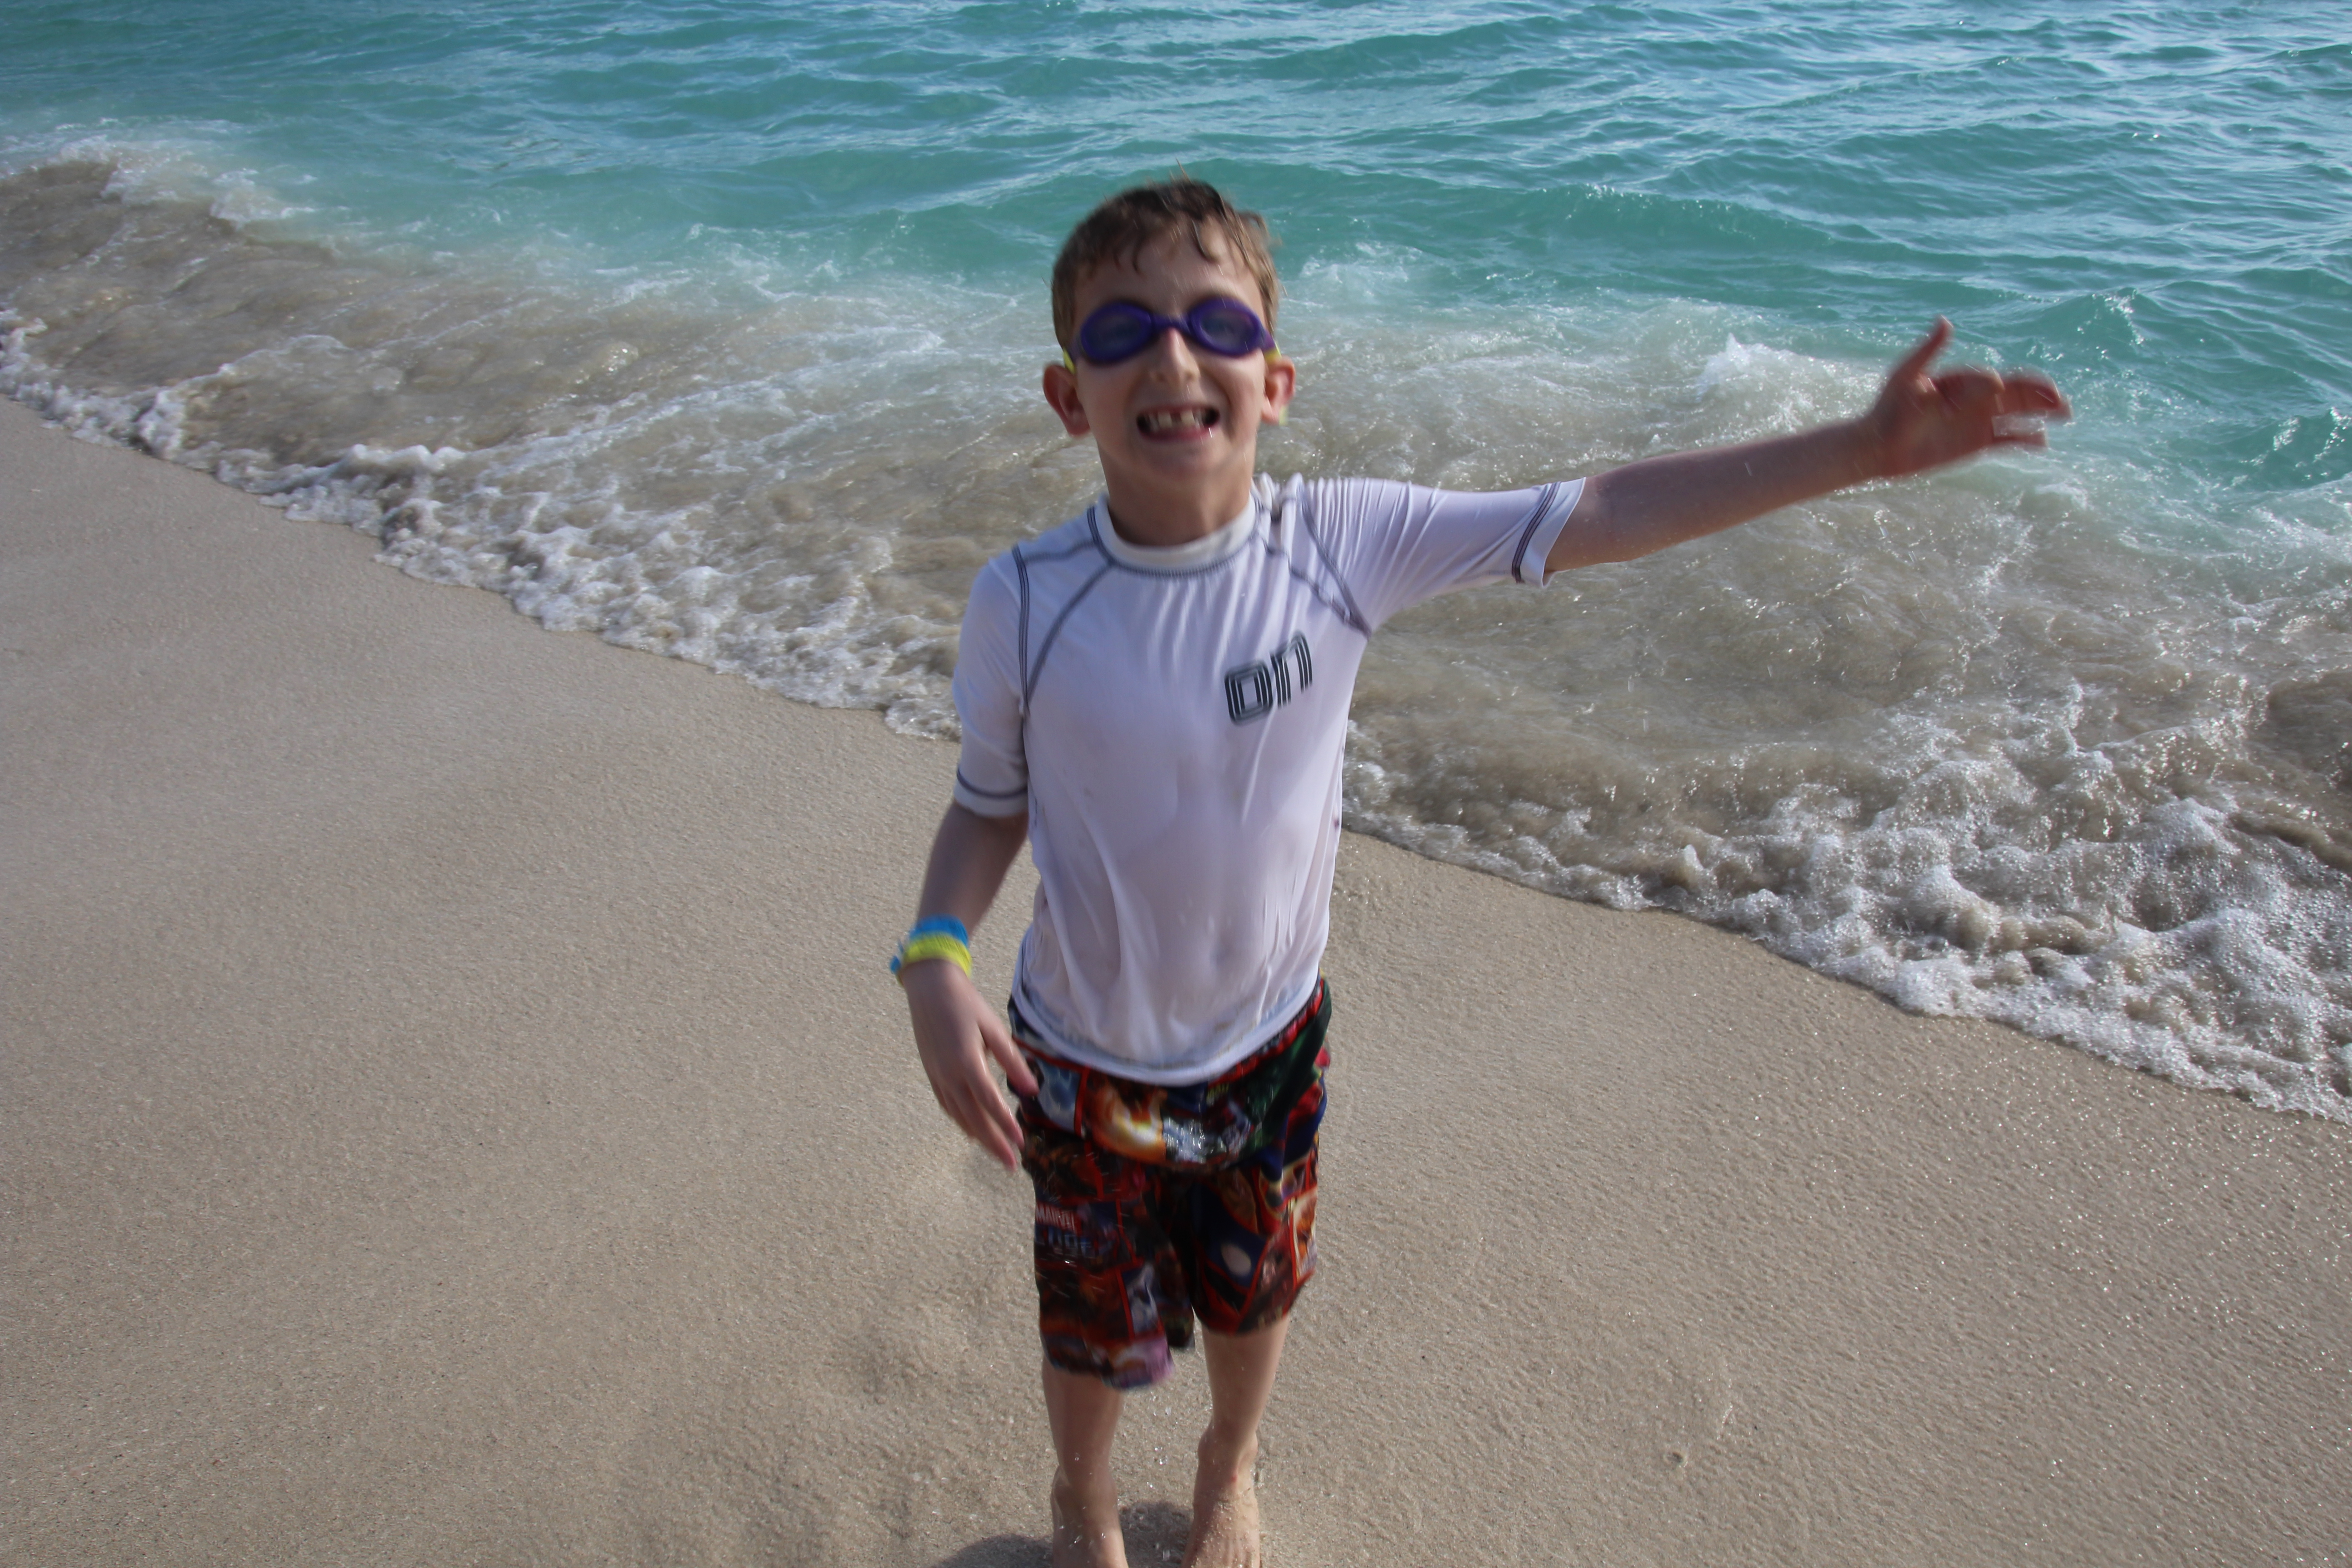 Stress less coloring by the shore - The Author S Son On The Beach Next To The Shore